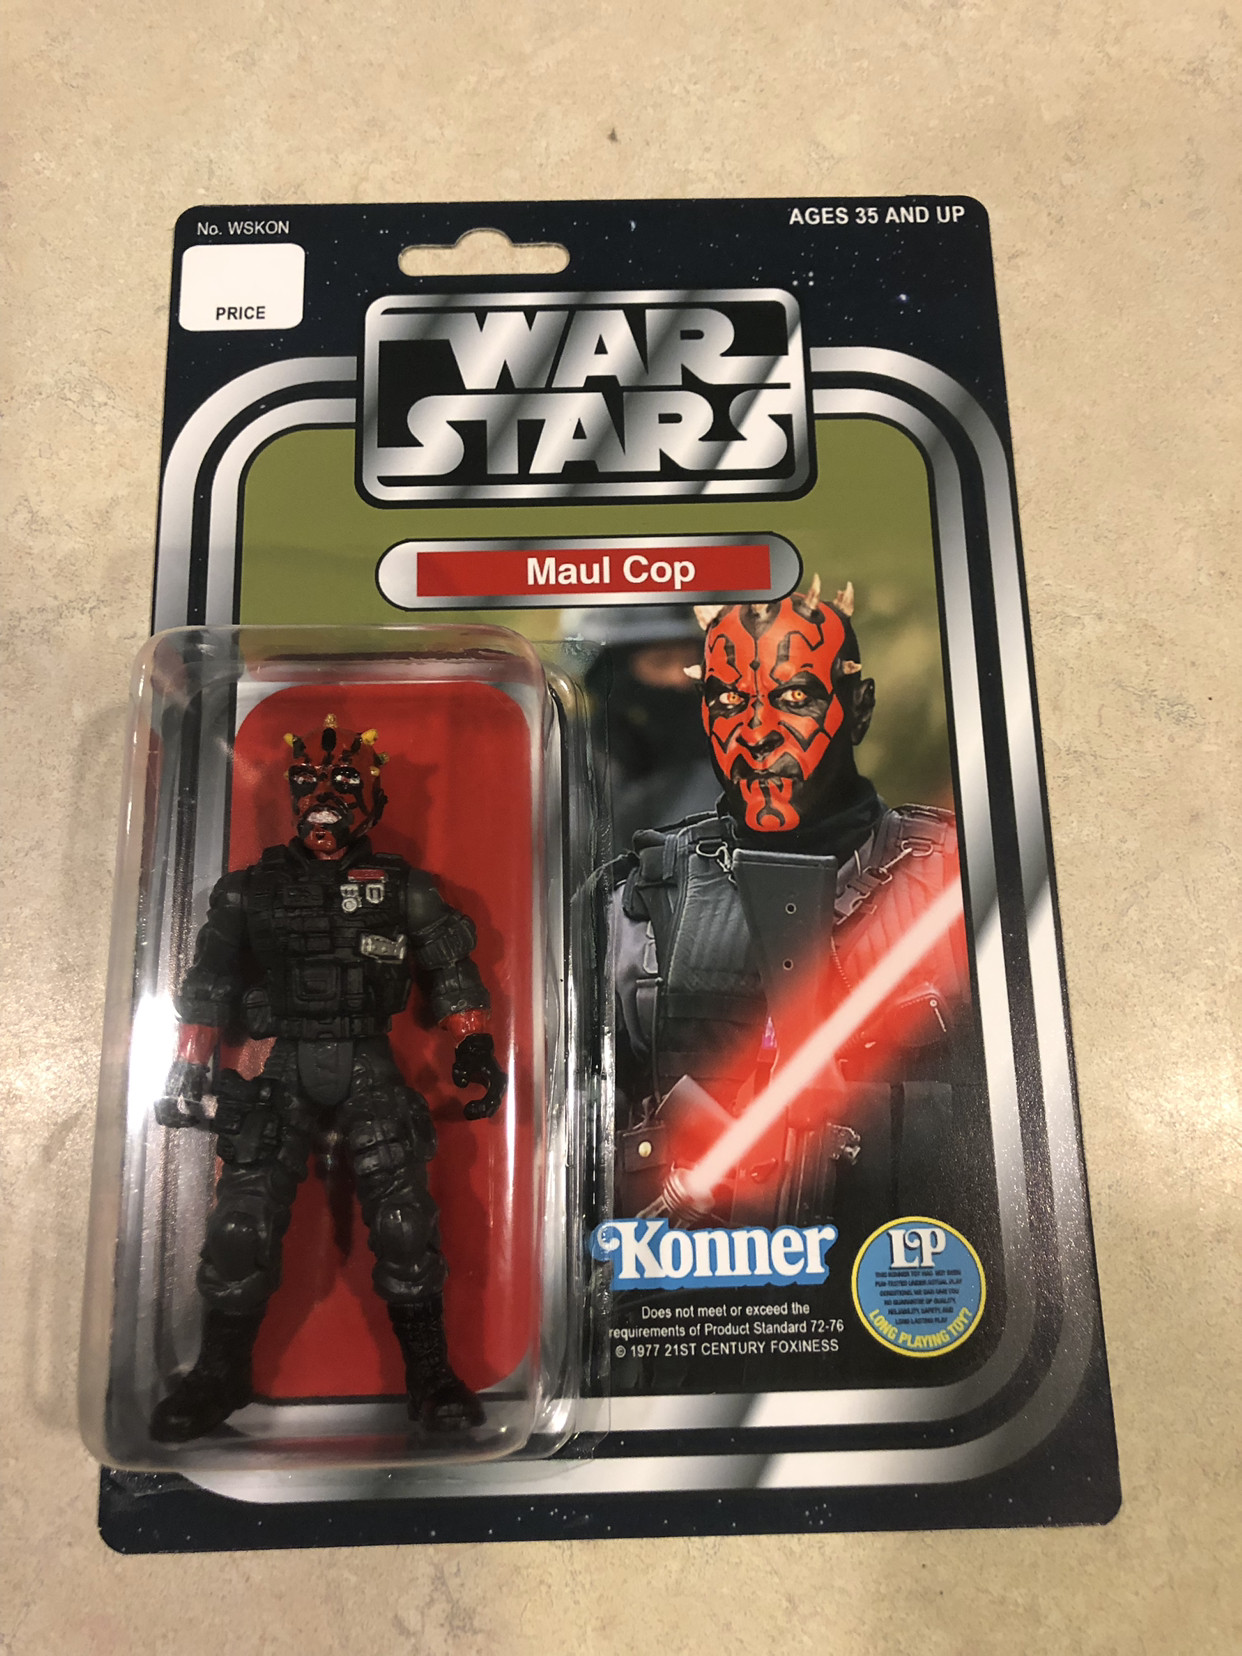 Maul Cop - A silly hobby continues...